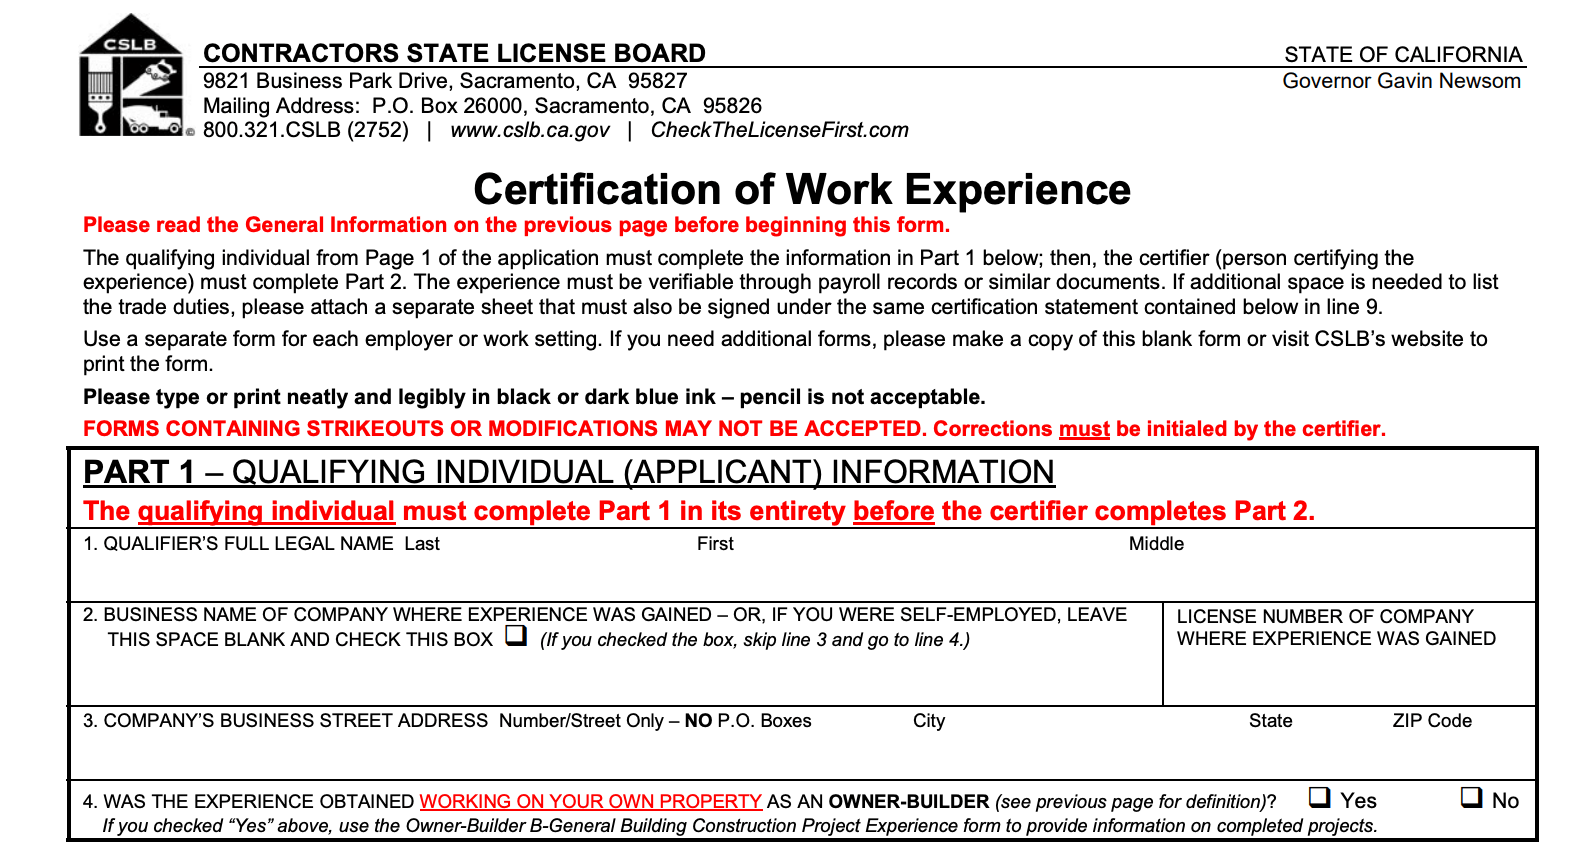 the certification of work experience portion of the california contractor license application